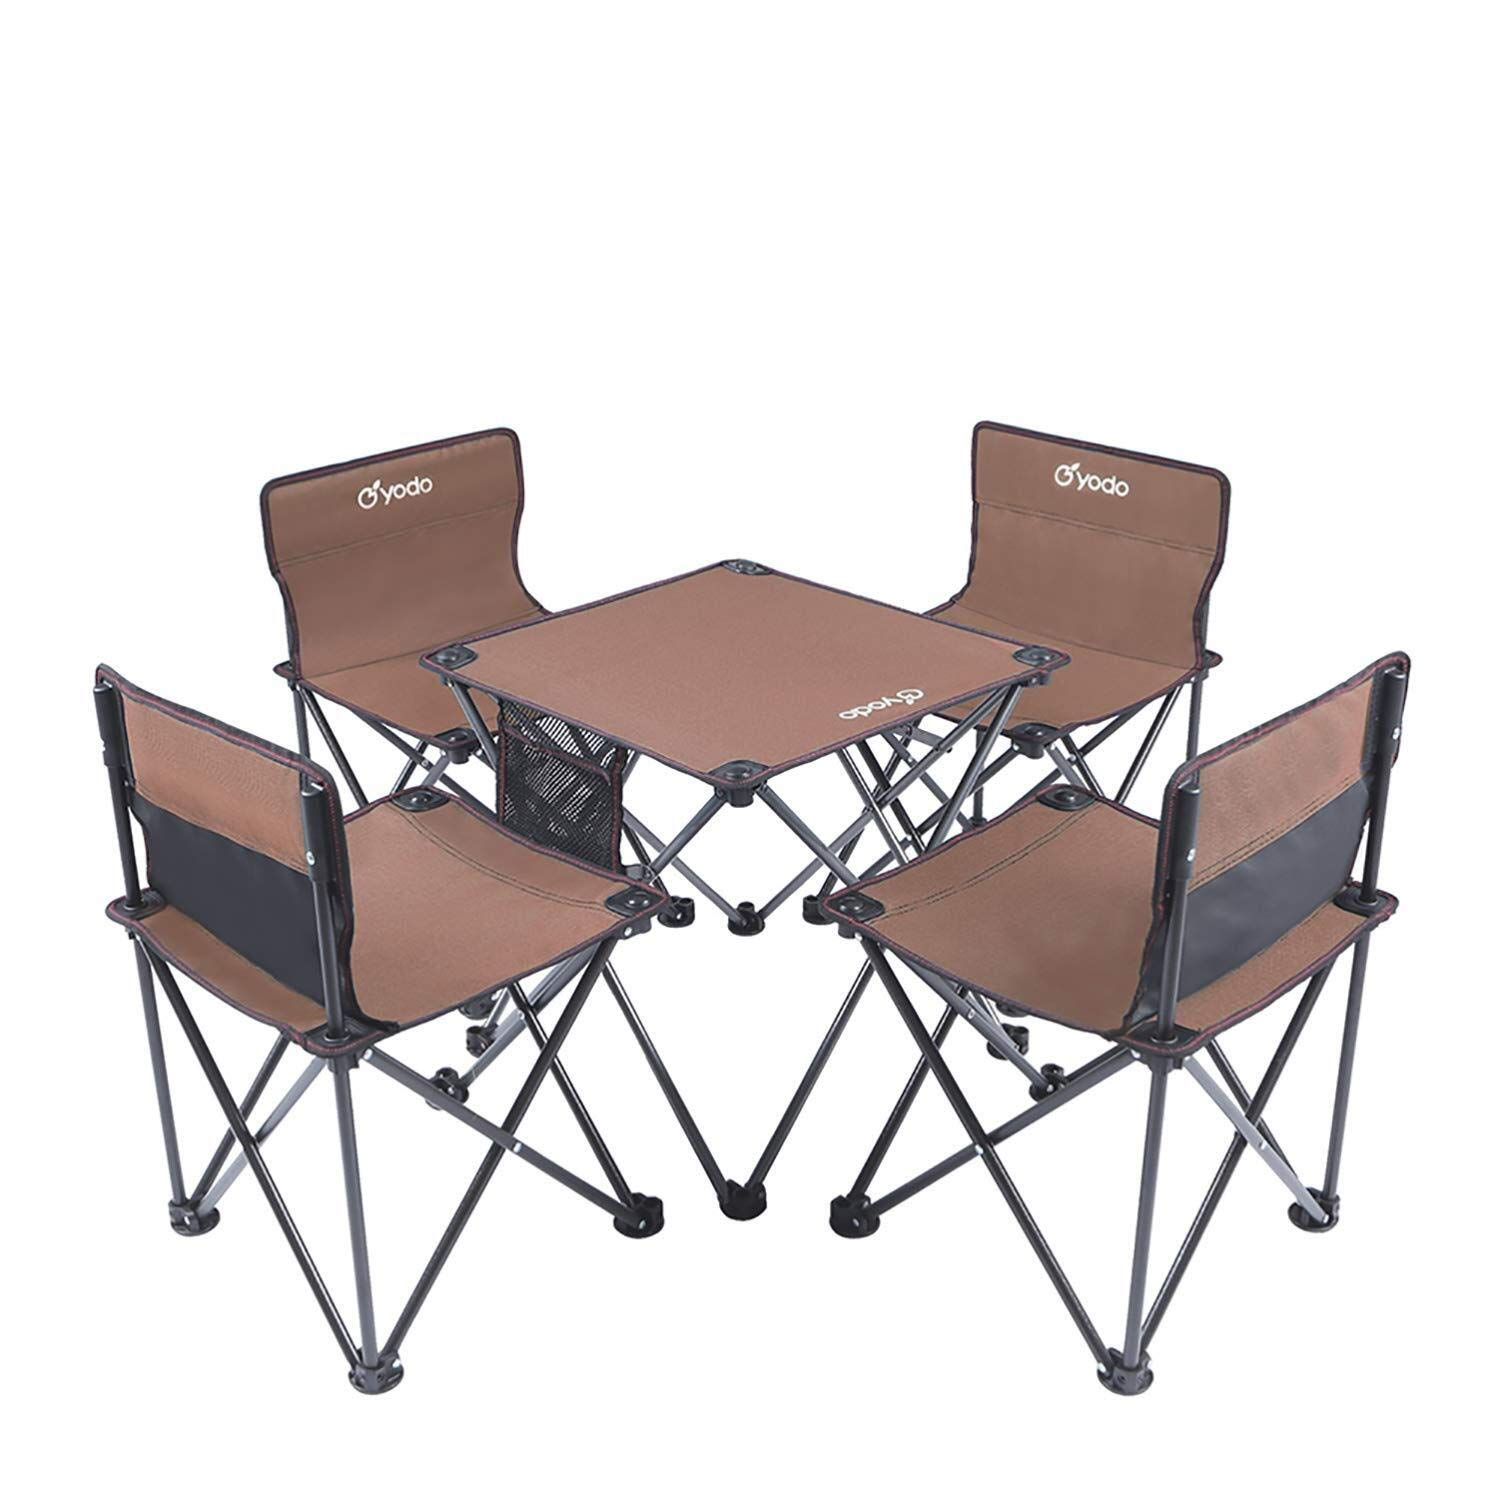 Picnic Table Fold Away Folding Portable Camping Table with Mesh Bag for Courtyard Interior oO (Color : Brown) by MUMM